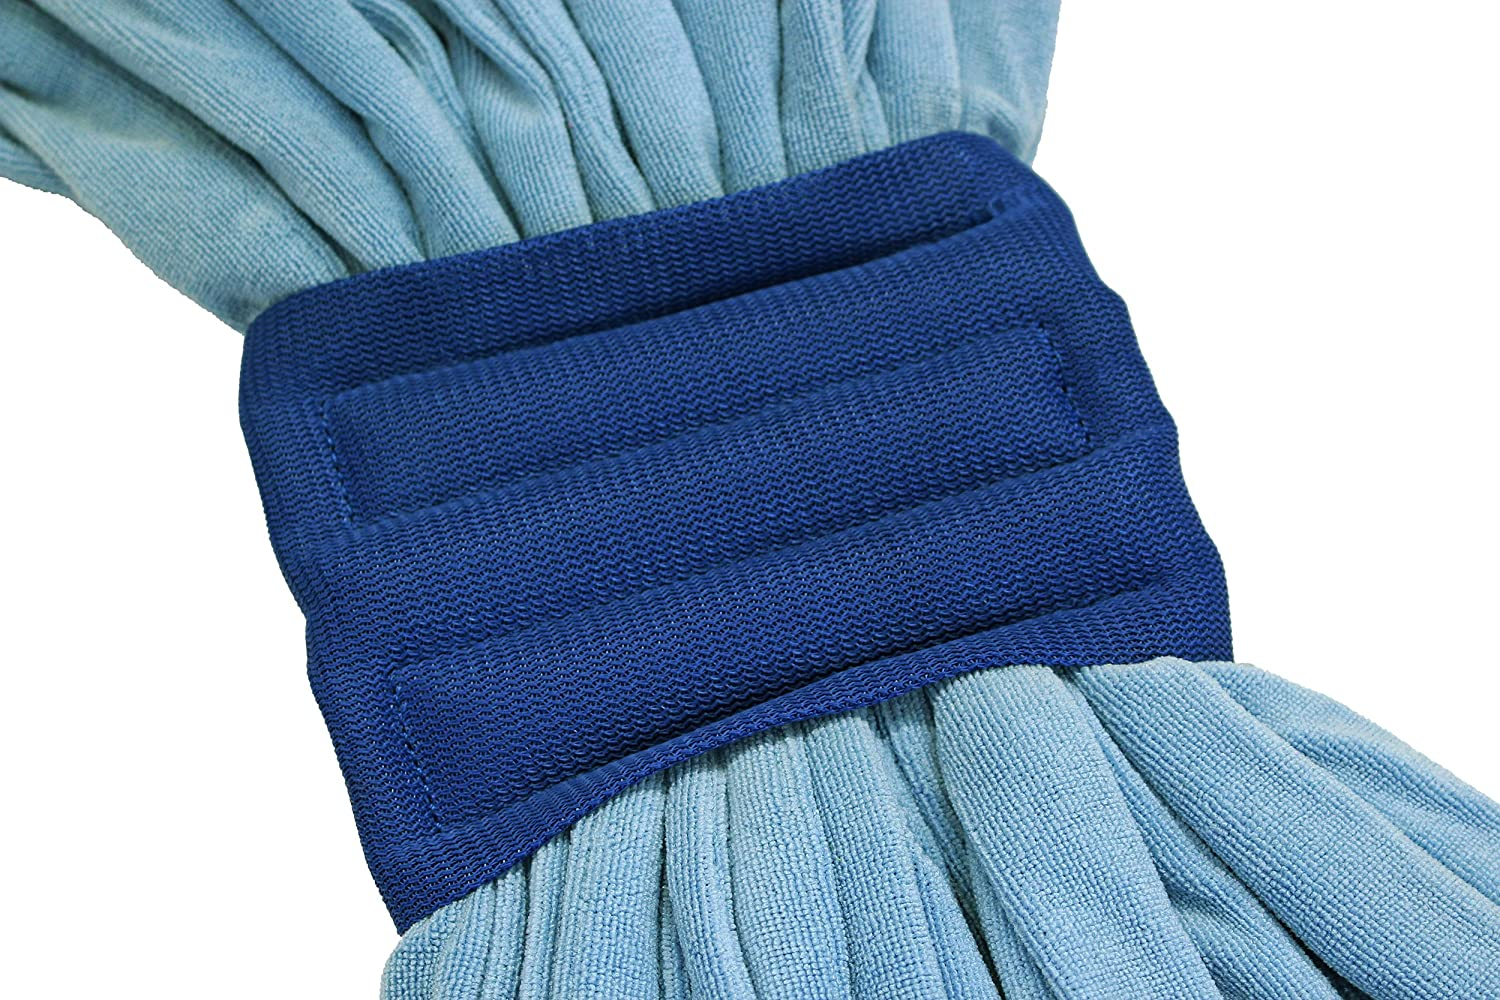 Industrial Wet Mops with Canvas Headbands SupplyBuy Large Microfiber Tube Mops Pack of 2